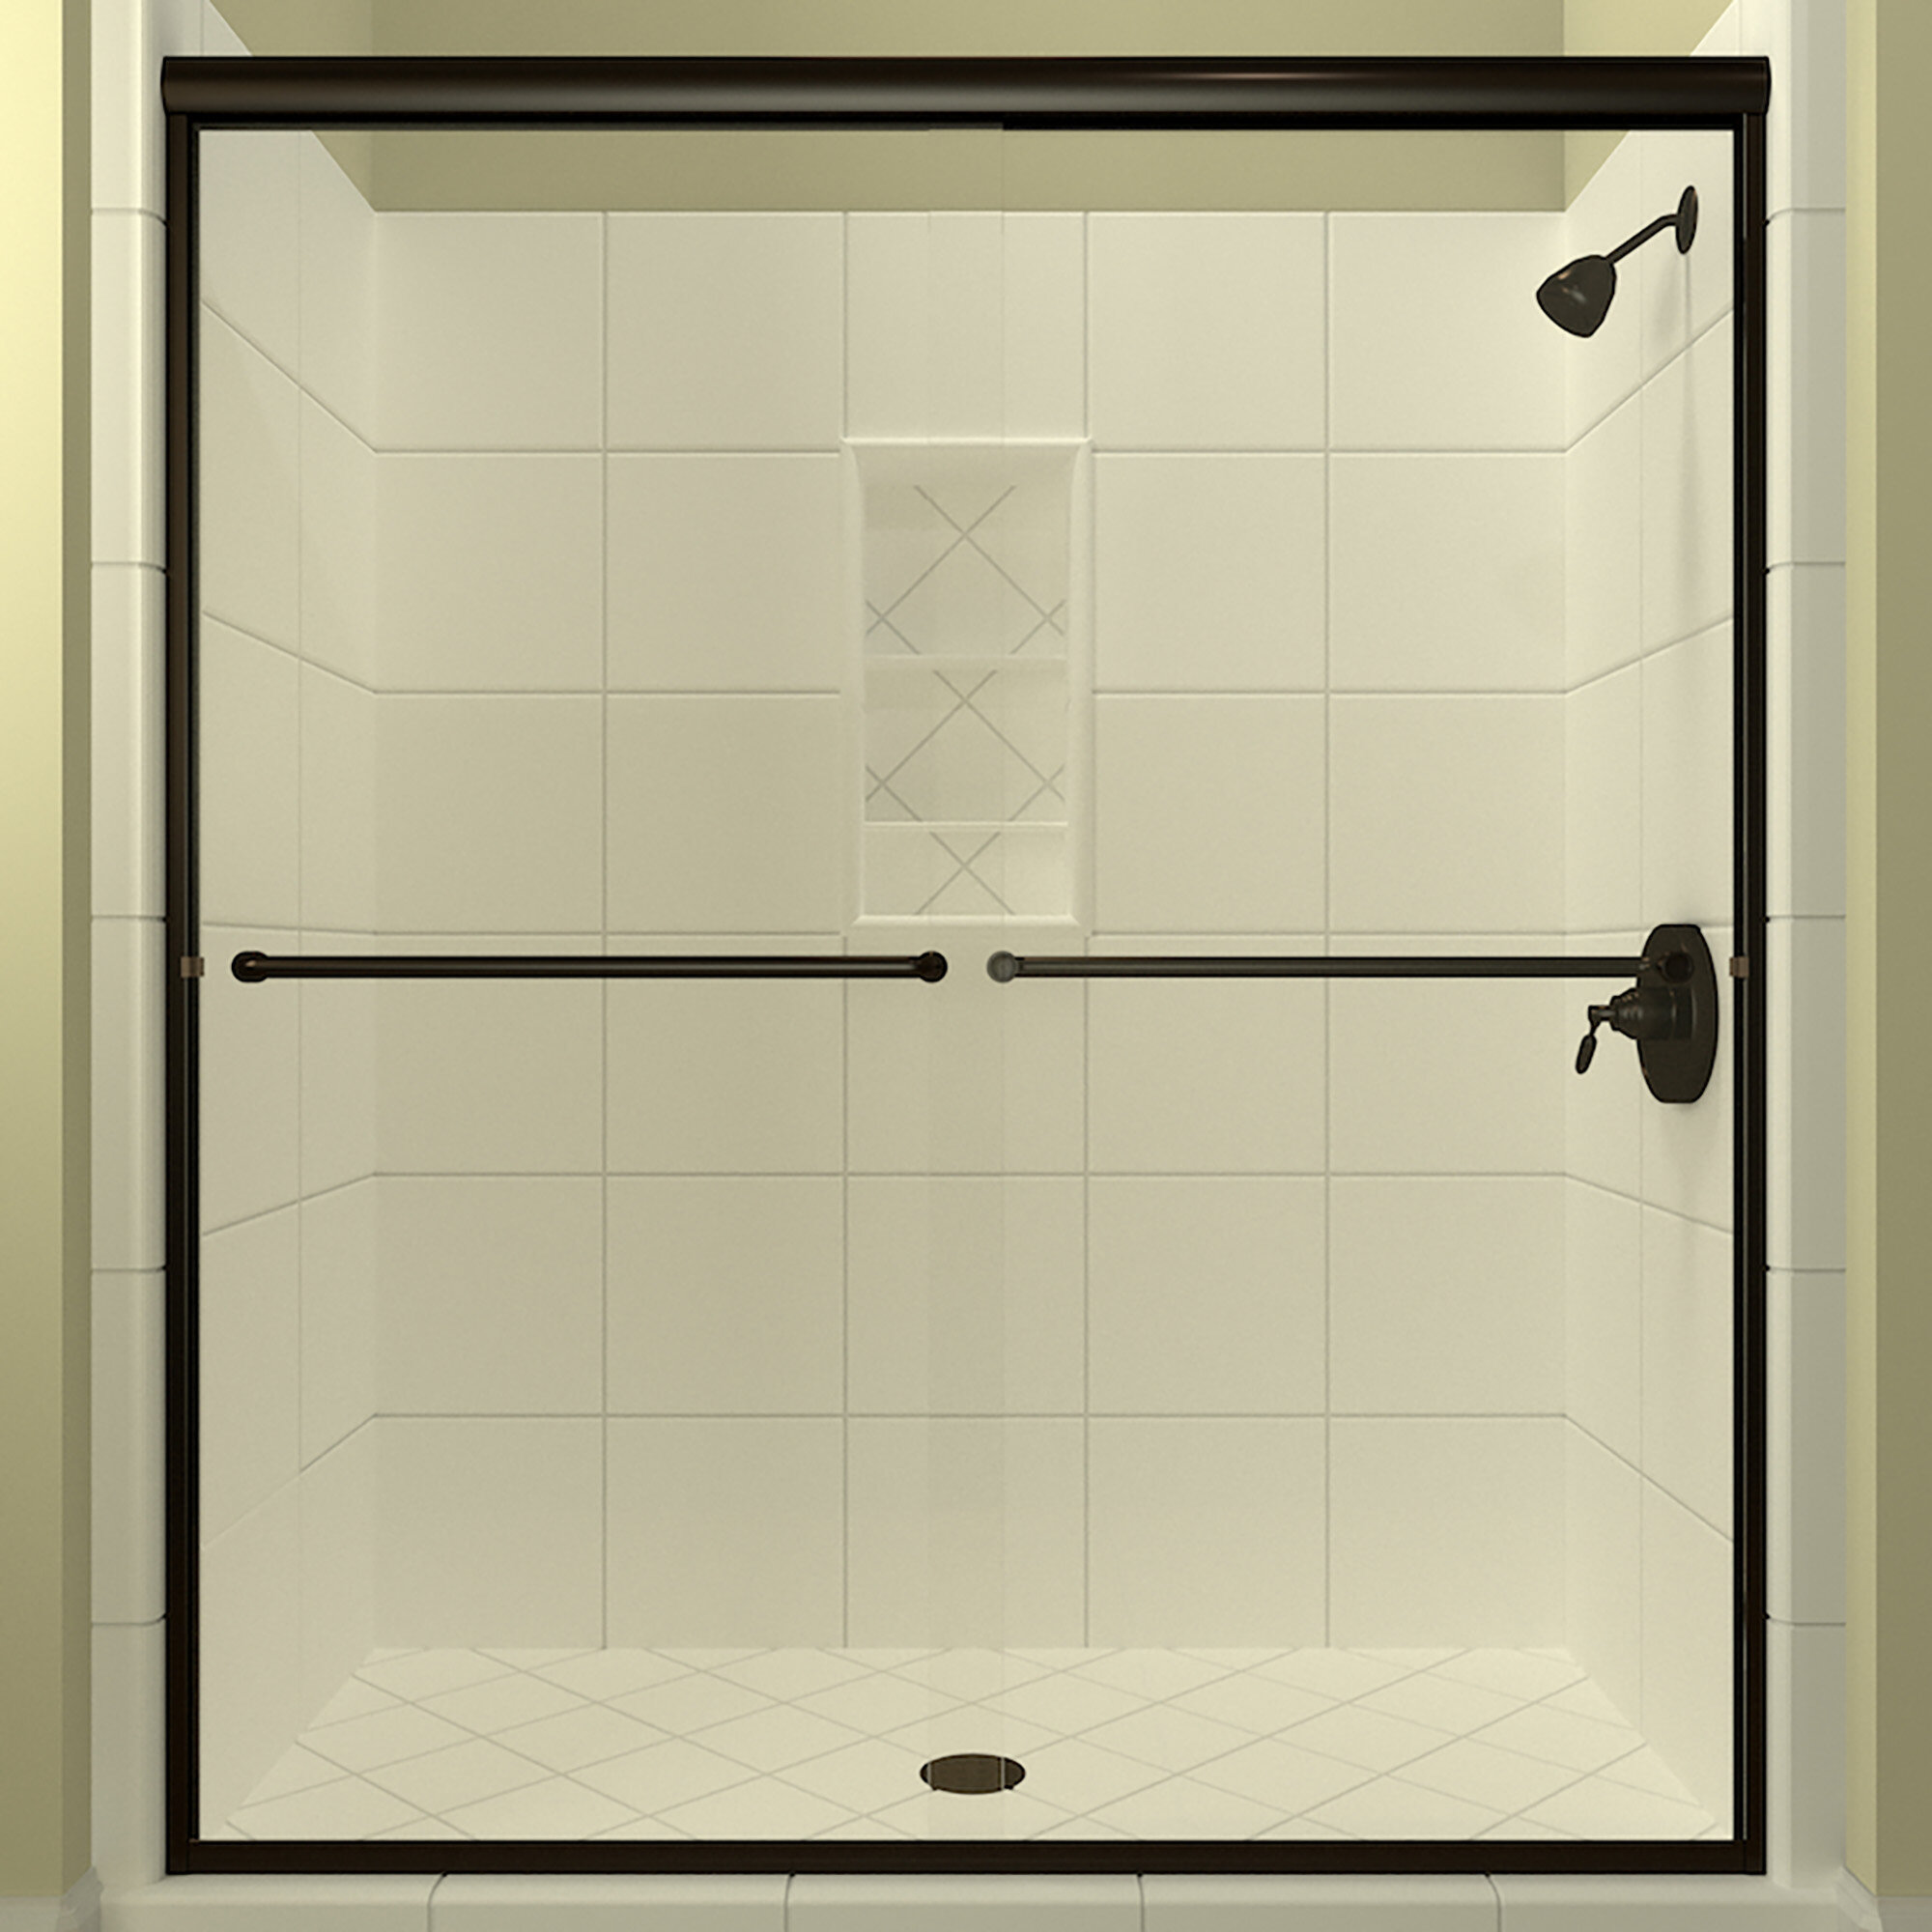 Details About Leser Bypass Semi Frameless Shower Door Anodized Oil Rubbed Bronze 60 38